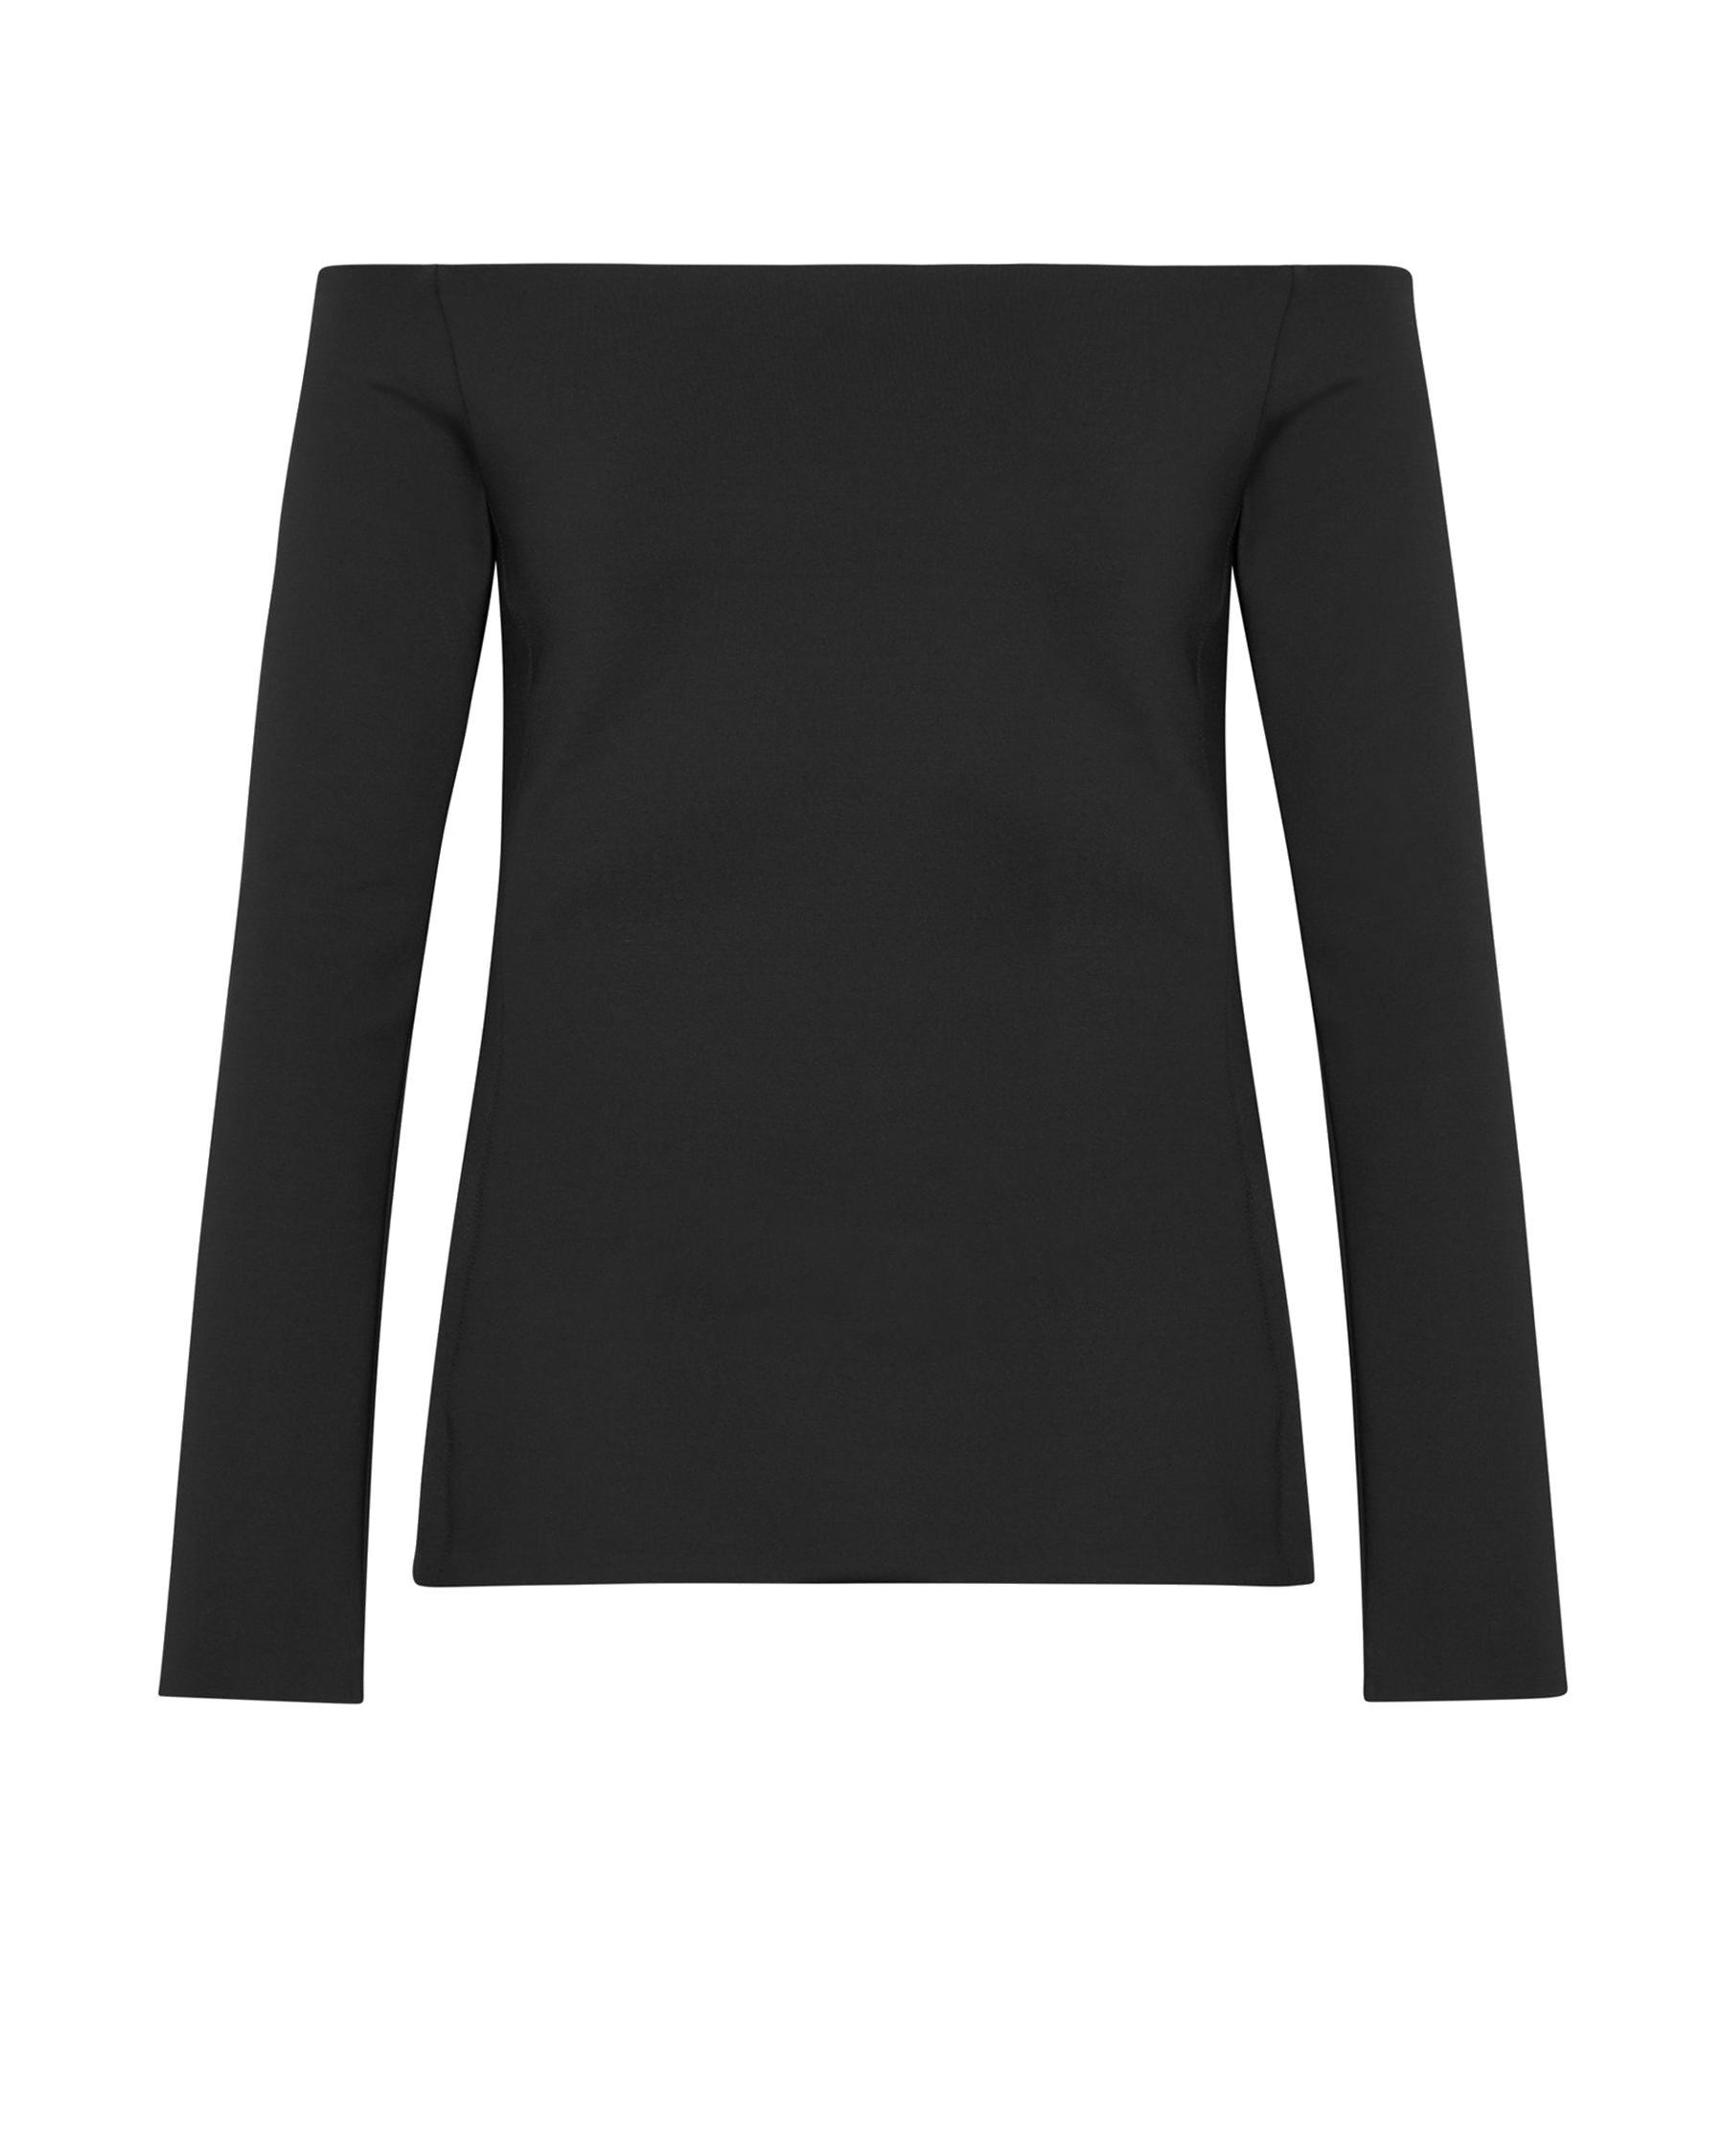 e675135cae02 Lyst - Theory Mod Knit Off-the-shoulder Fitted Top Black in Black